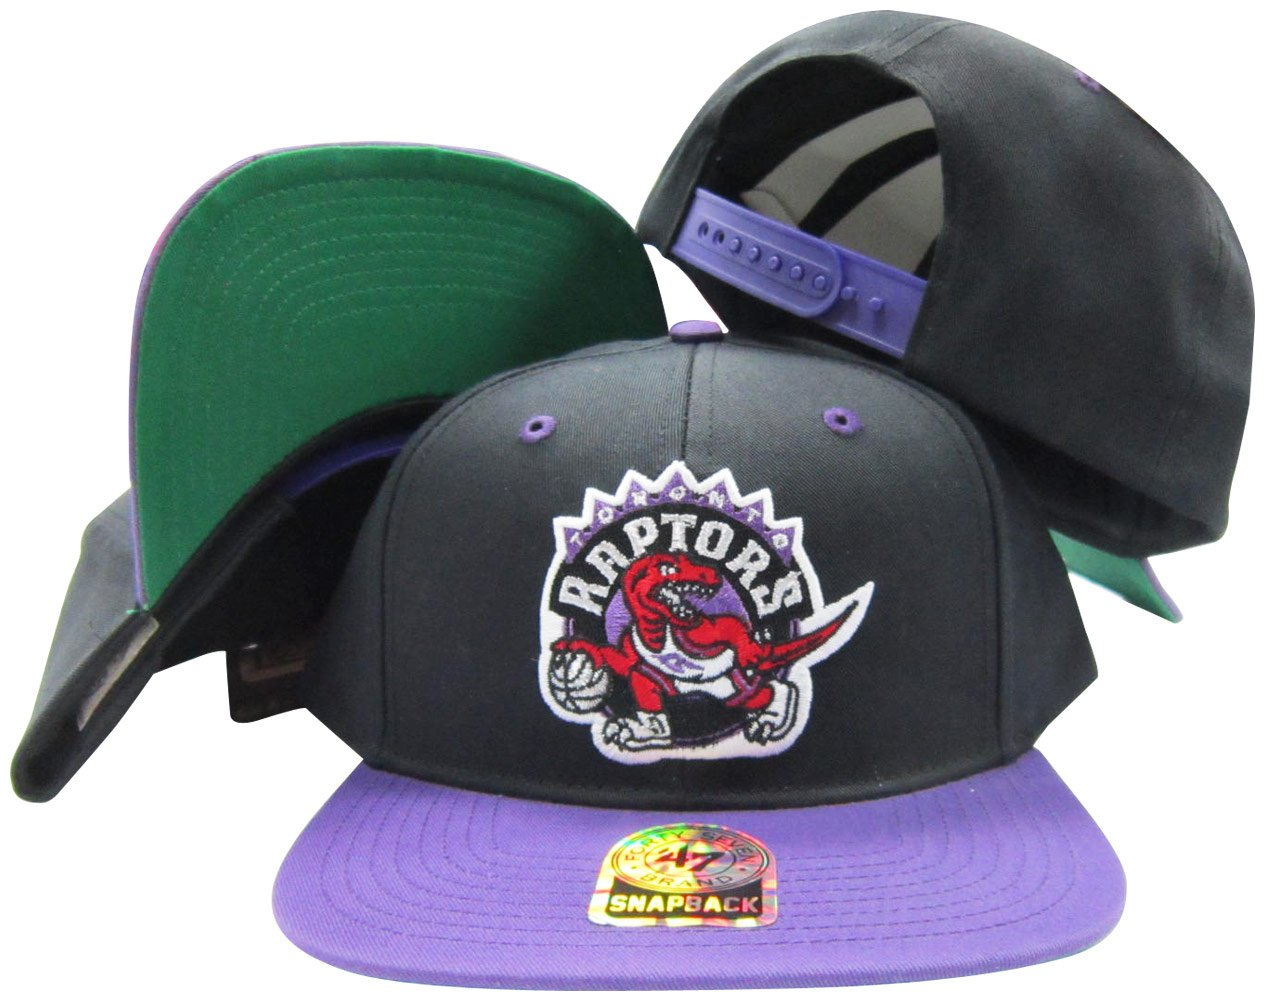 Amazon.com   Toronto Raptors Black Purple Old School Snap Structured  Plastic Snap Snapback Hat Cap   Sports   Outdoors b4491384e46